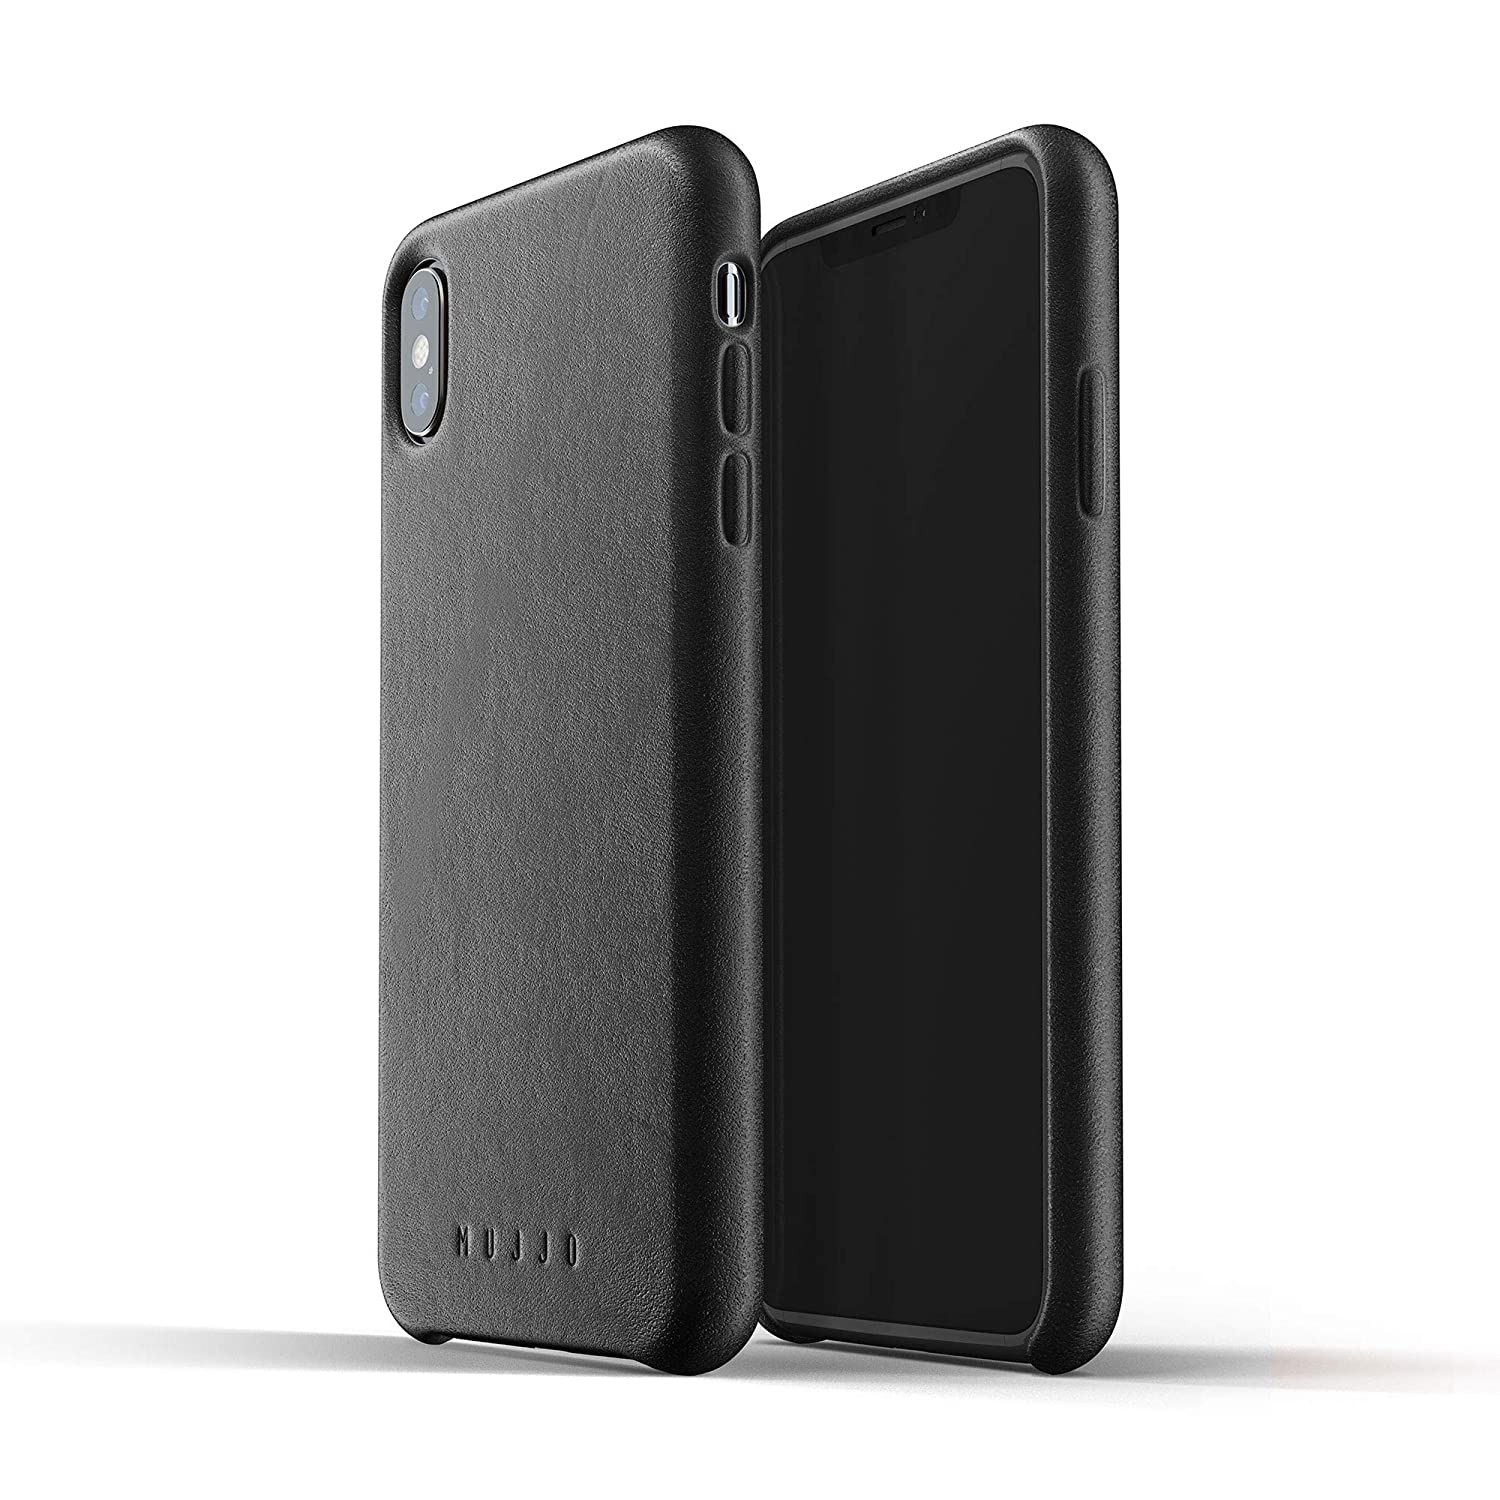 Funda Para iPhone Xs Max De Cuero Natural, Negro (xmp)